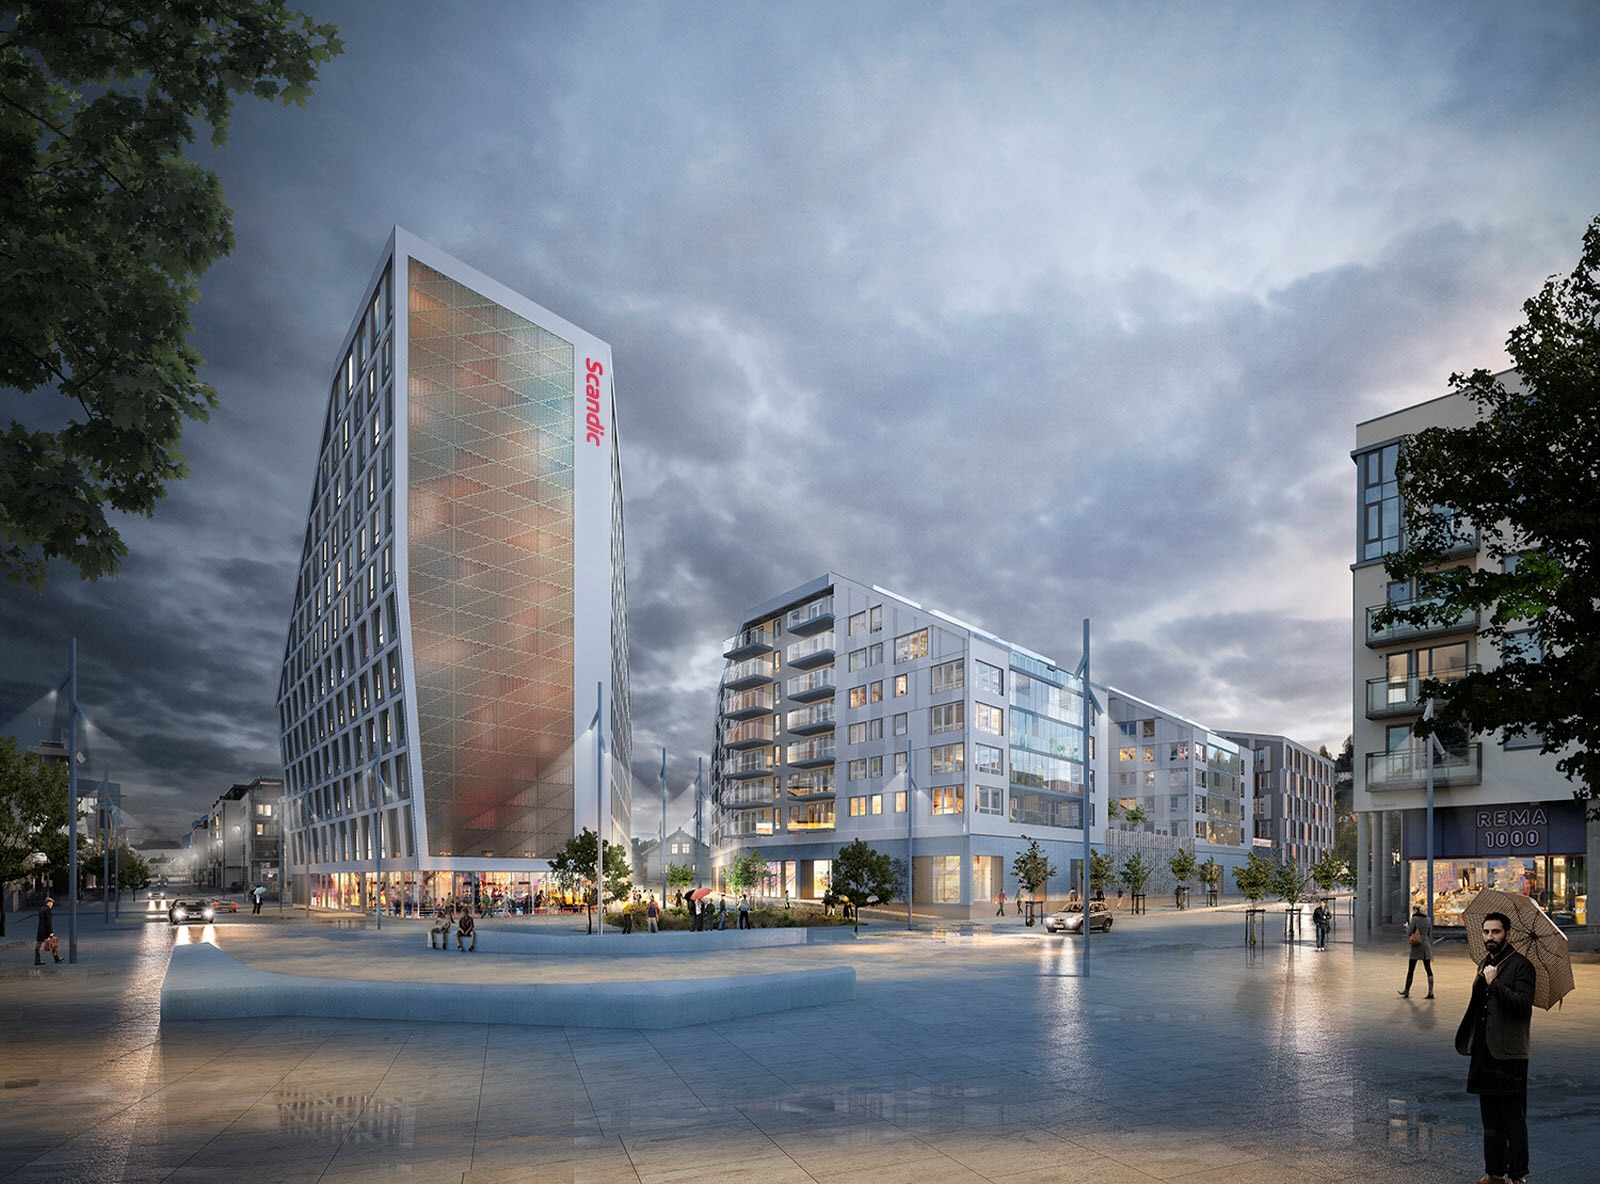 Scandic Lillestrom in Norway, to be opened 2018.